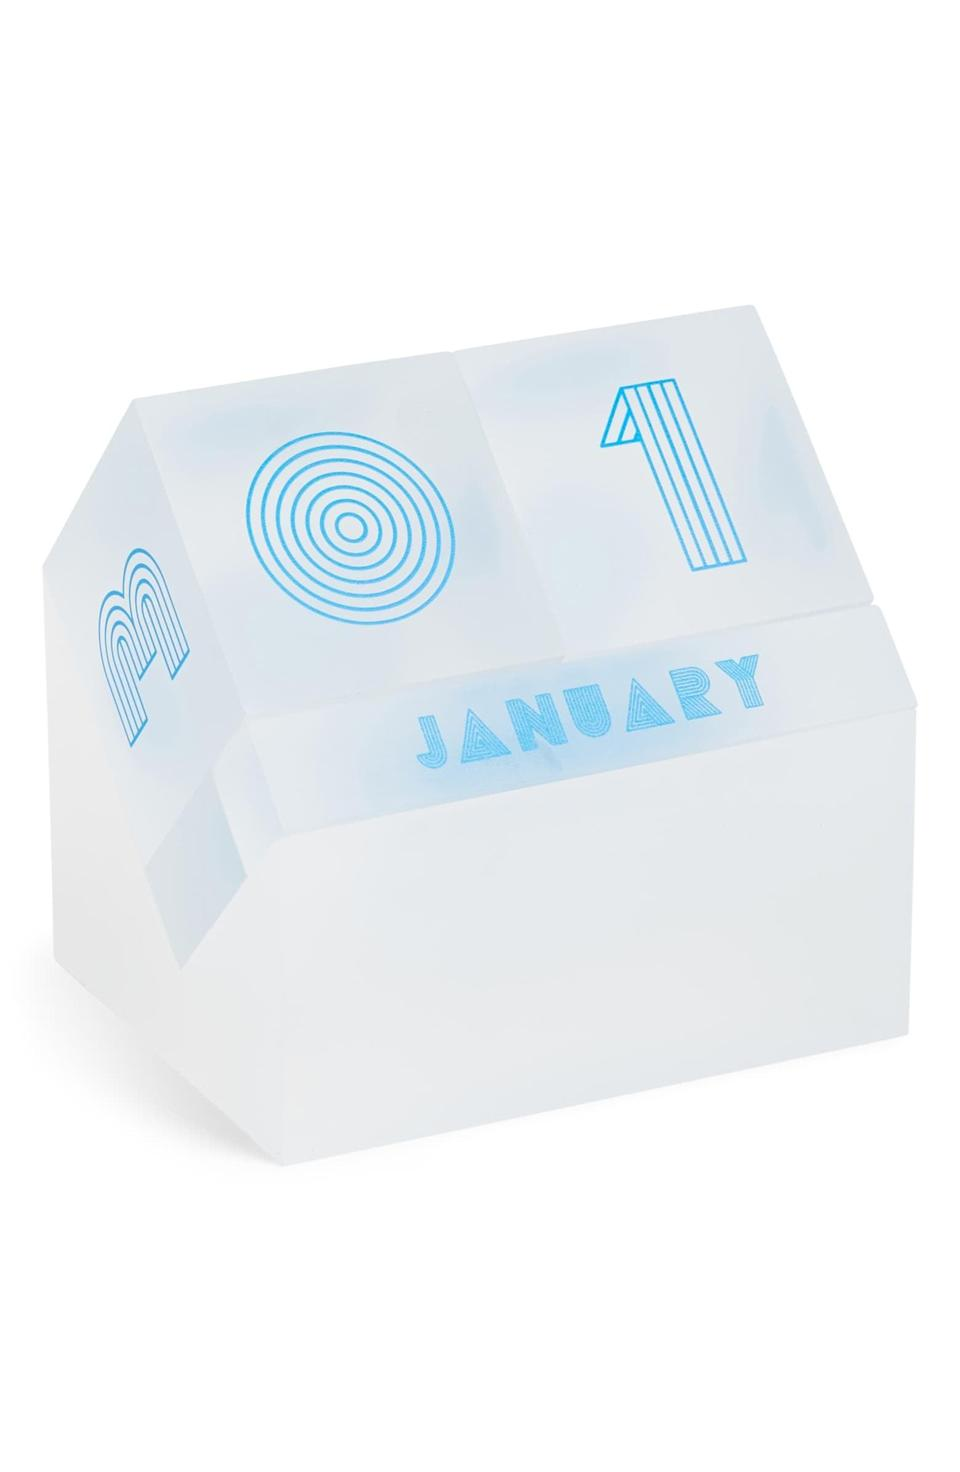 "<p>Upgrade their desk with this <a href=""https://www.popsugar.com/buy/Poketo-Lucite-Perpetual-Block-Calendar-532953?p_name=Poketo%20Lucite%20Perpetual%20Block%20Calendar&retailer=shop.nordstrom.com&pid=532953&price=68&evar1=fab%3Aus&evar9=36291197&evar98=https%3A%2F%2Fwww.popsugar.com%2Ffashion%2Fphoto-gallery%2F36291197%2Fimage%2F47027901%2FPoketo-Lucite-Perpetual-Block-Calendar&list1=shopping%2Choliday%2Cwinter%2Cgift%20guide%2Cwinter%20fashion%2Choliday%20fashion%2Cfashion%20gifts&prop13=api&pdata=1"" rel=""nofollow noopener"" class=""link rapid-noclick-resp"" target=""_blank"" data-ylk=""slk:Poketo Lucite Perpetual Block Calendar"">Poketo Lucite Perpetual Block Calendar</a> ($68).</p>"